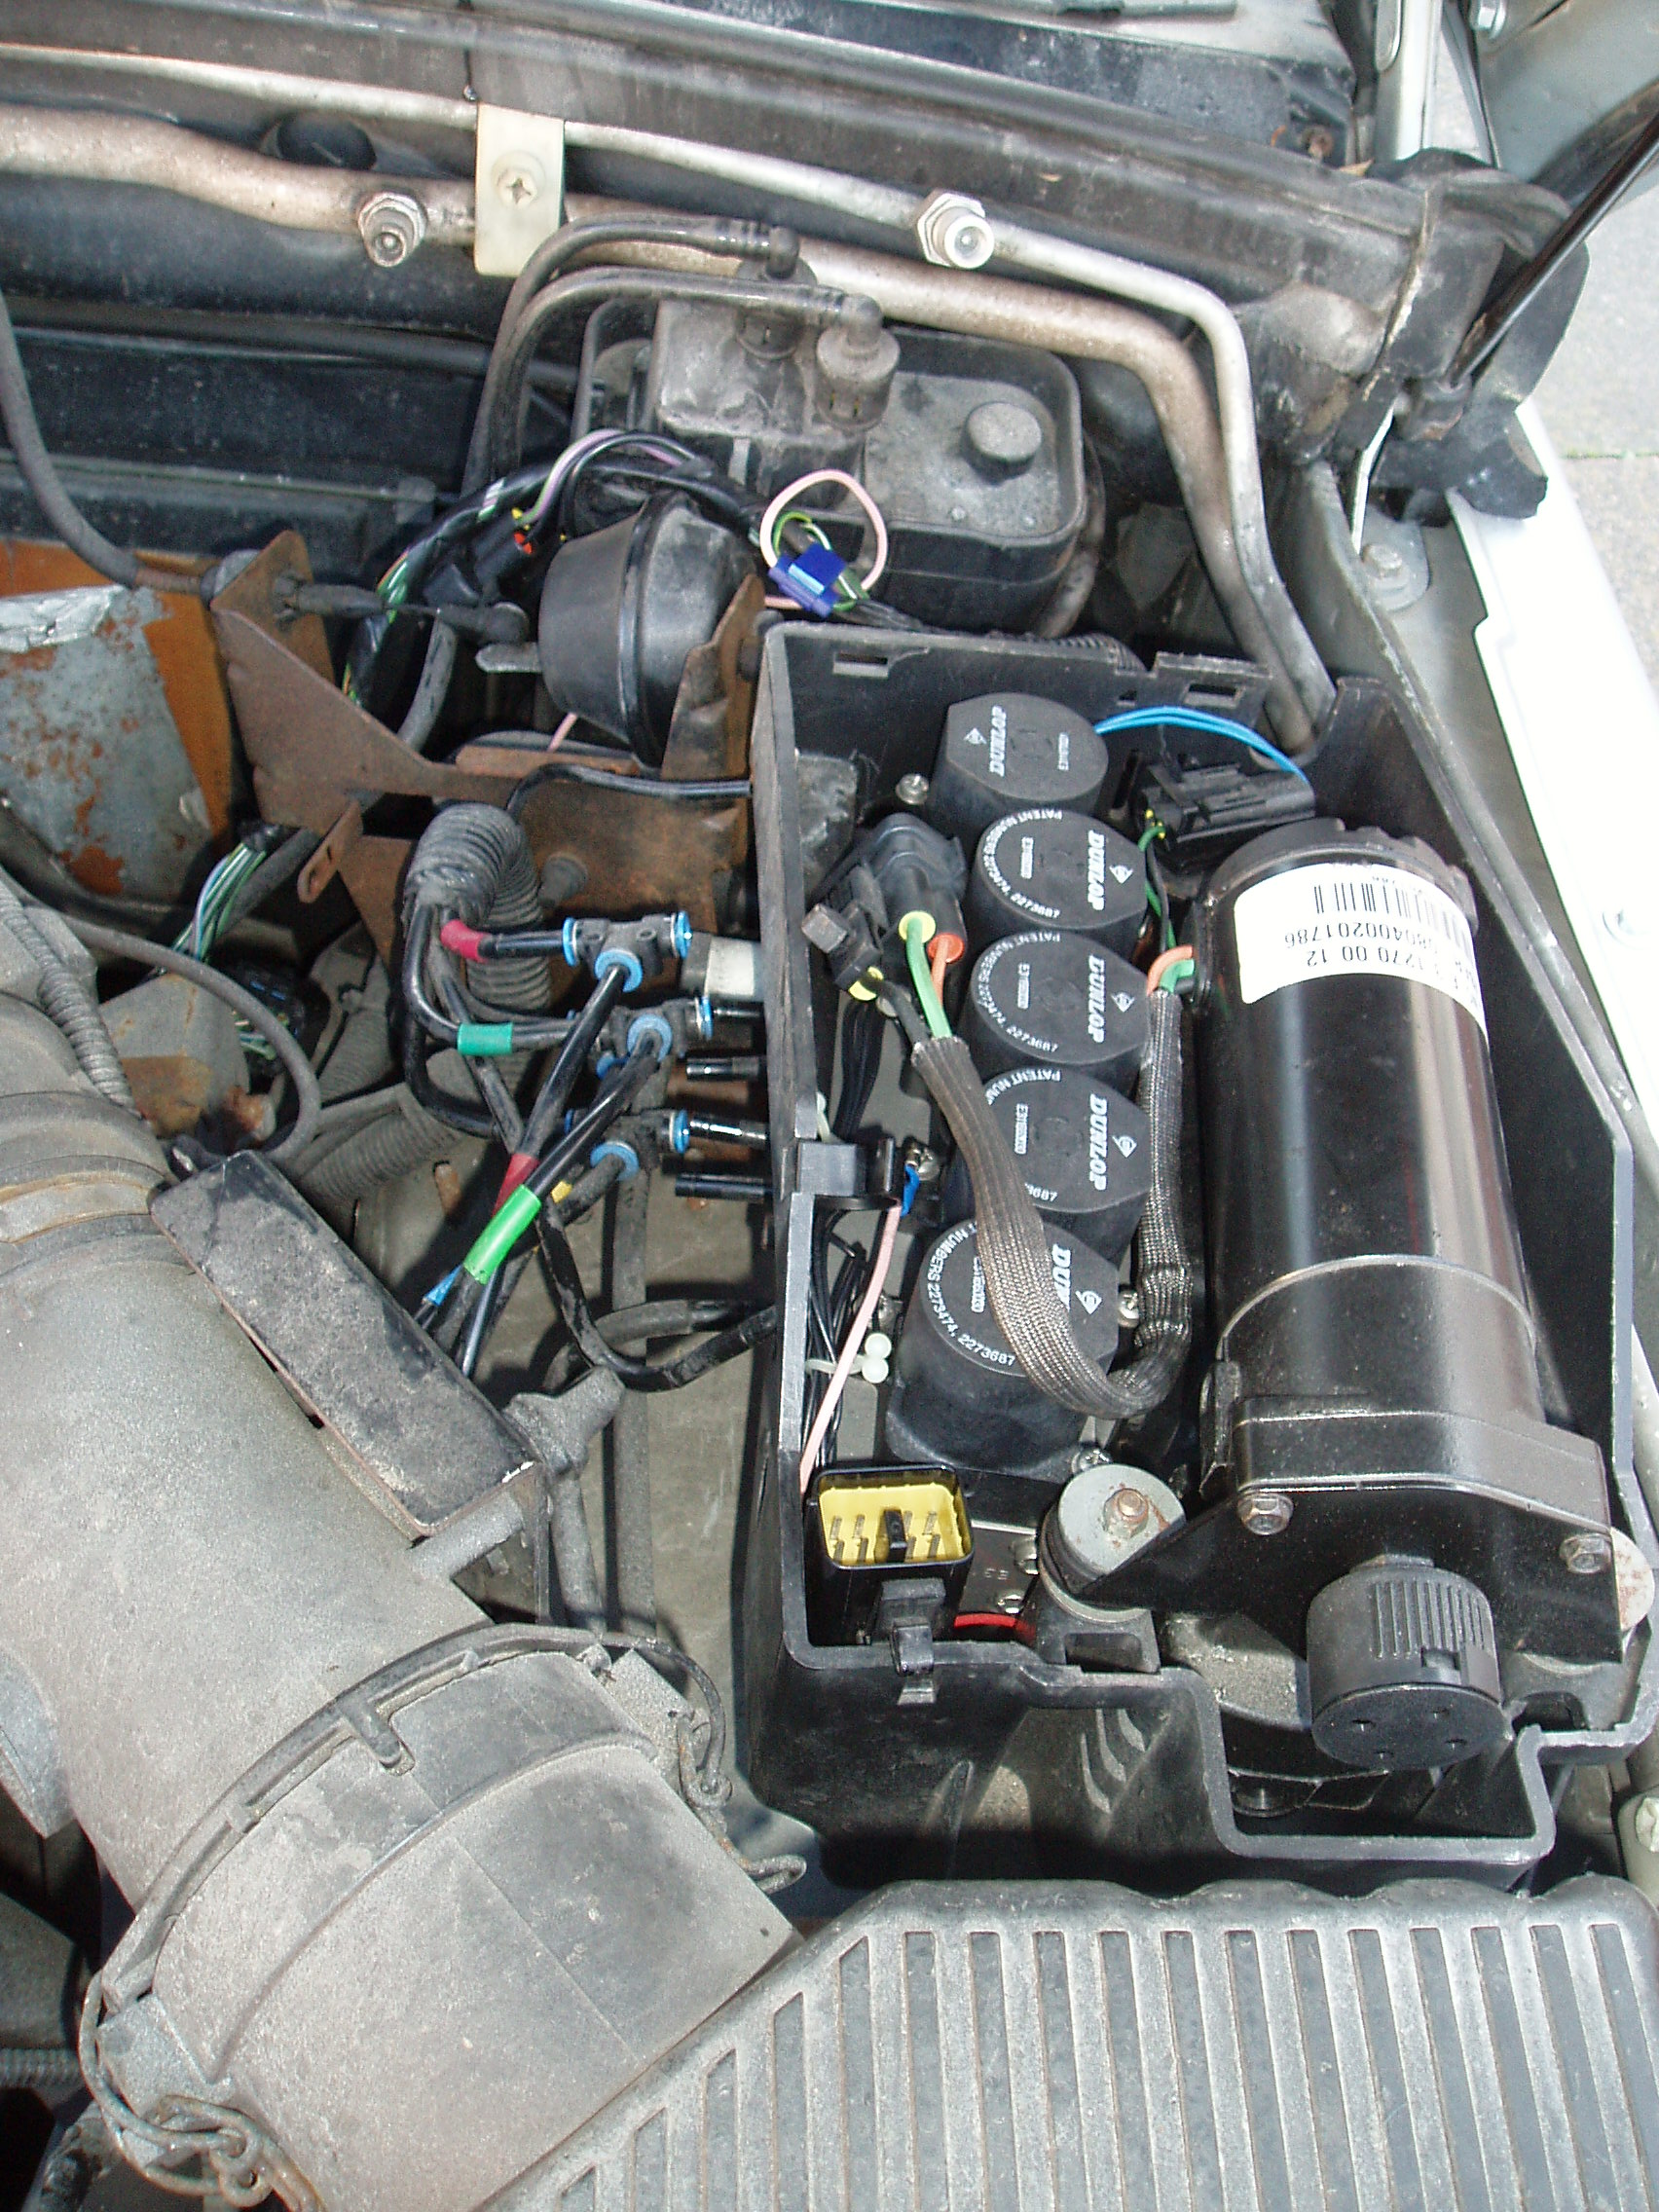 1987 Chevy Truck Wiring Diagram Together With 2005 Chevy Equinox Fuel